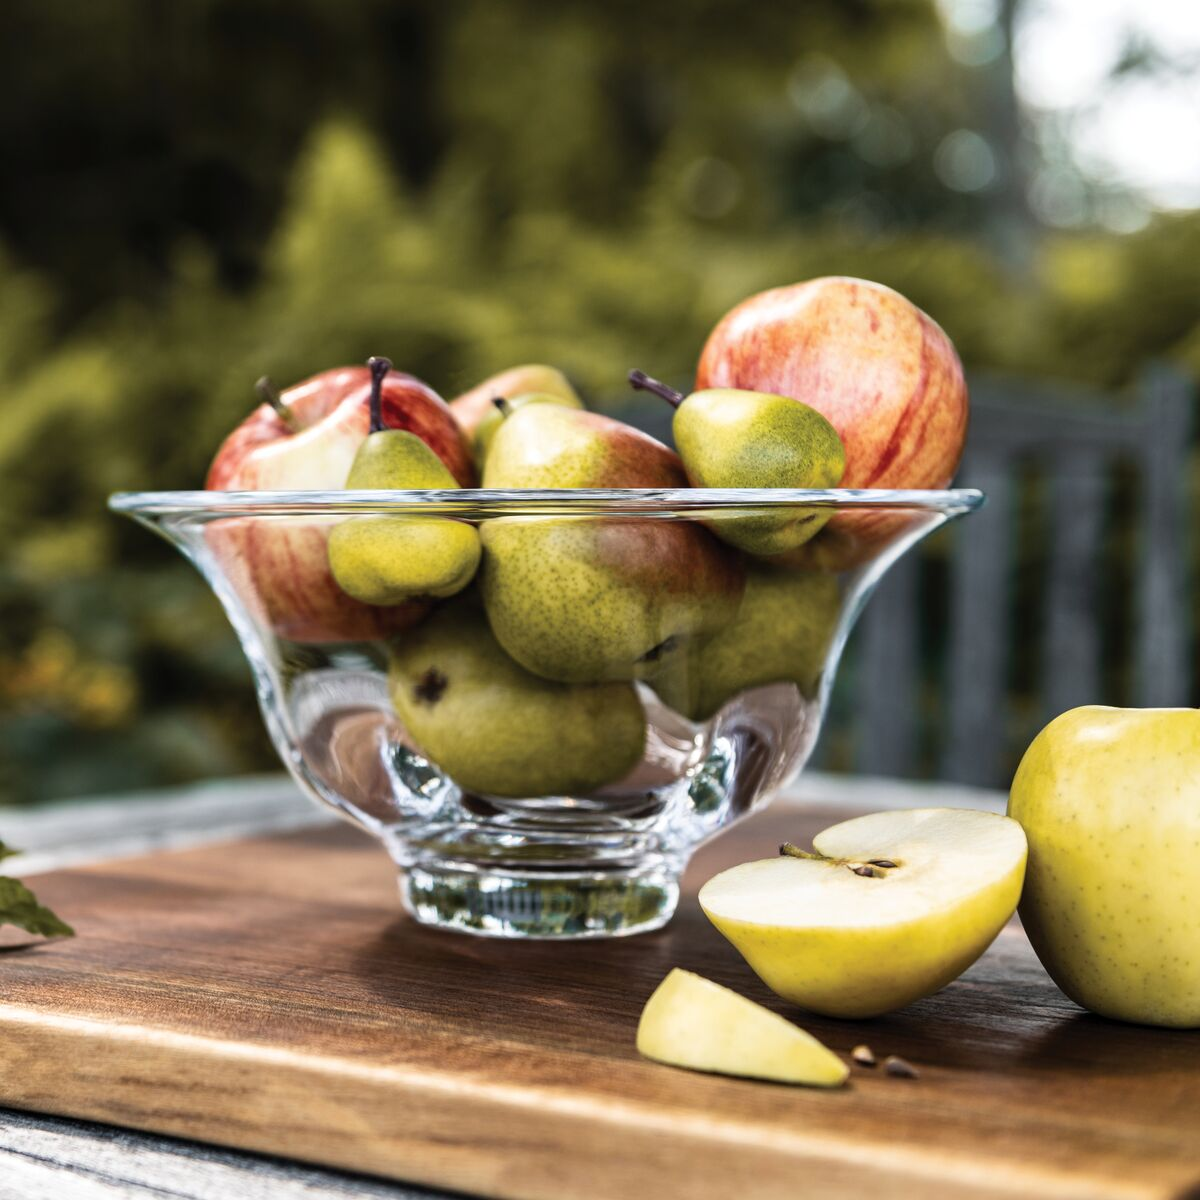 Apples with Shelburne bowl